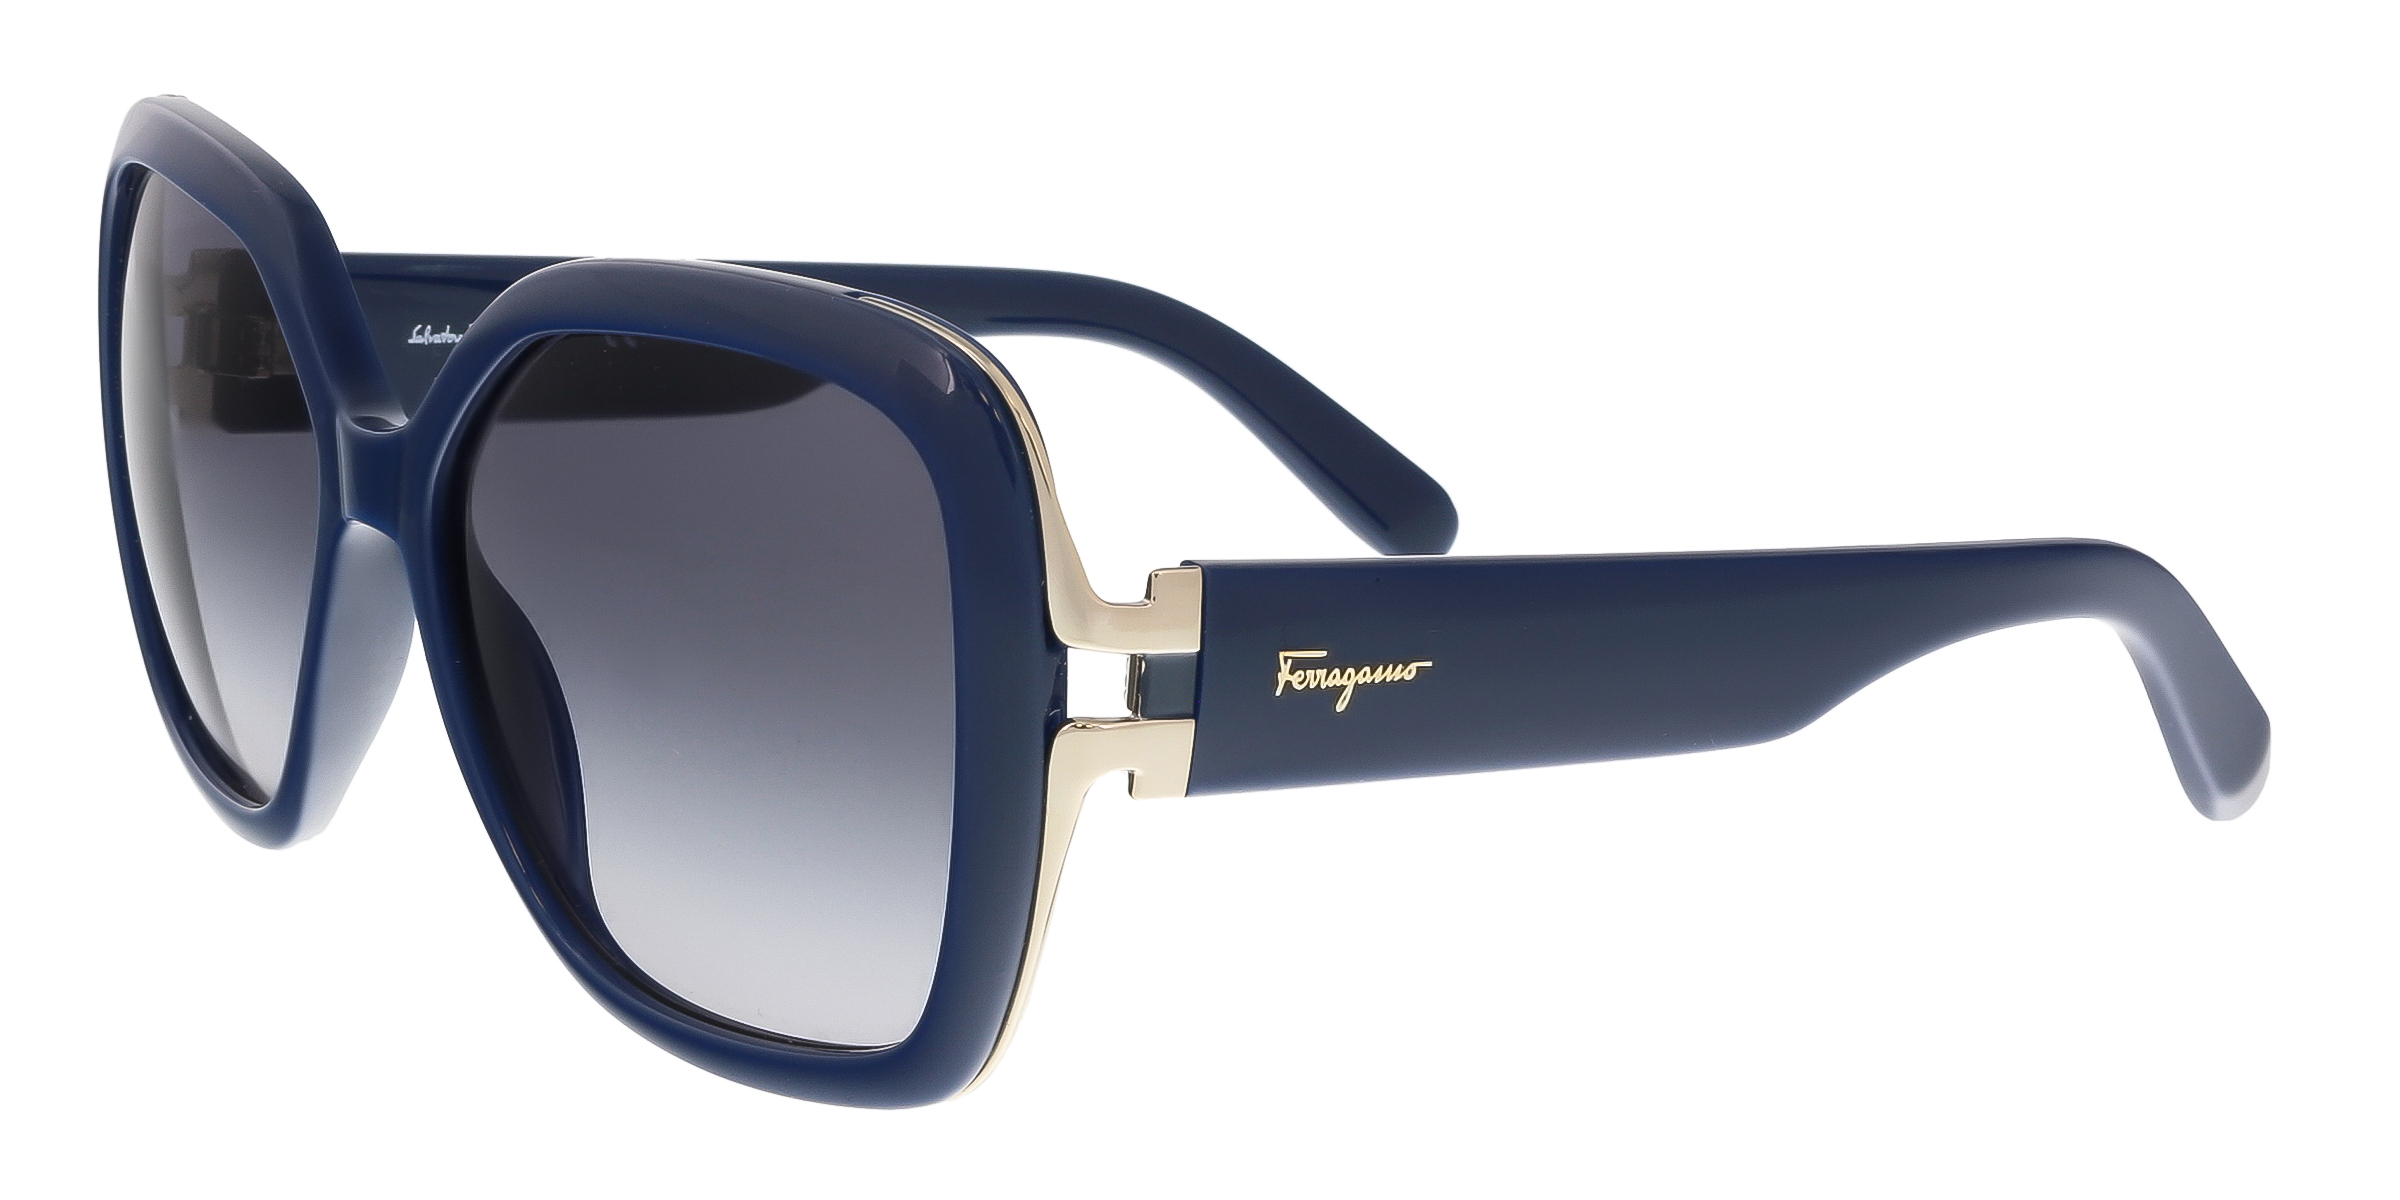 Salvatore Ferragamo SF781/S 414 Blue Square Feline Sunglasses